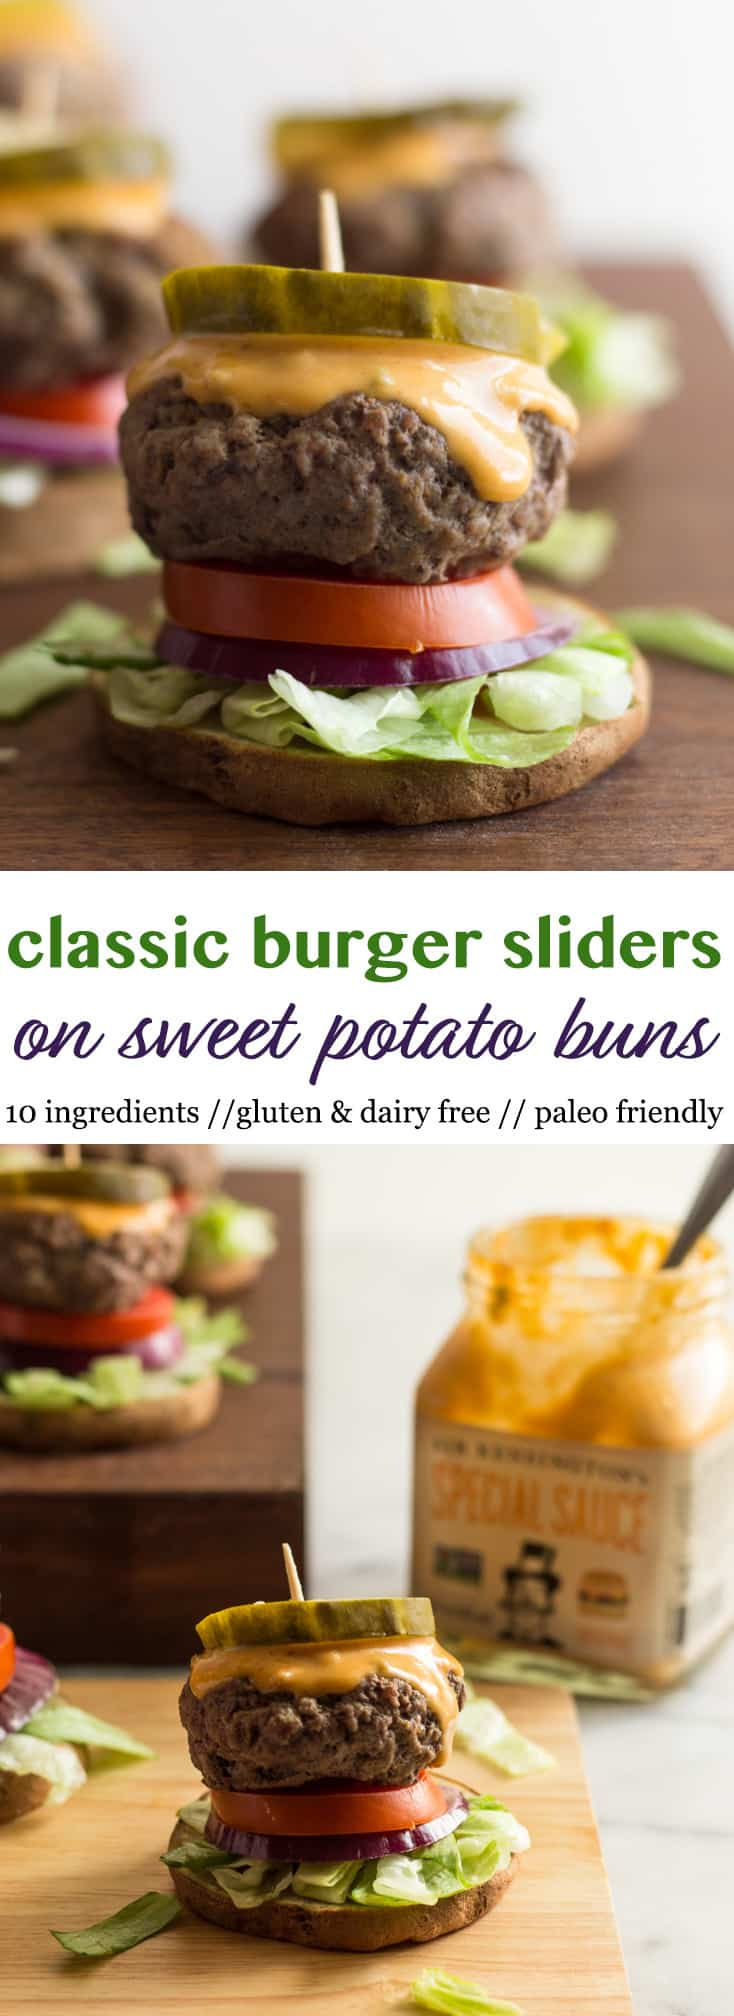 Classic Burger Sliders on Sweet Potato Buns Pinterest Image